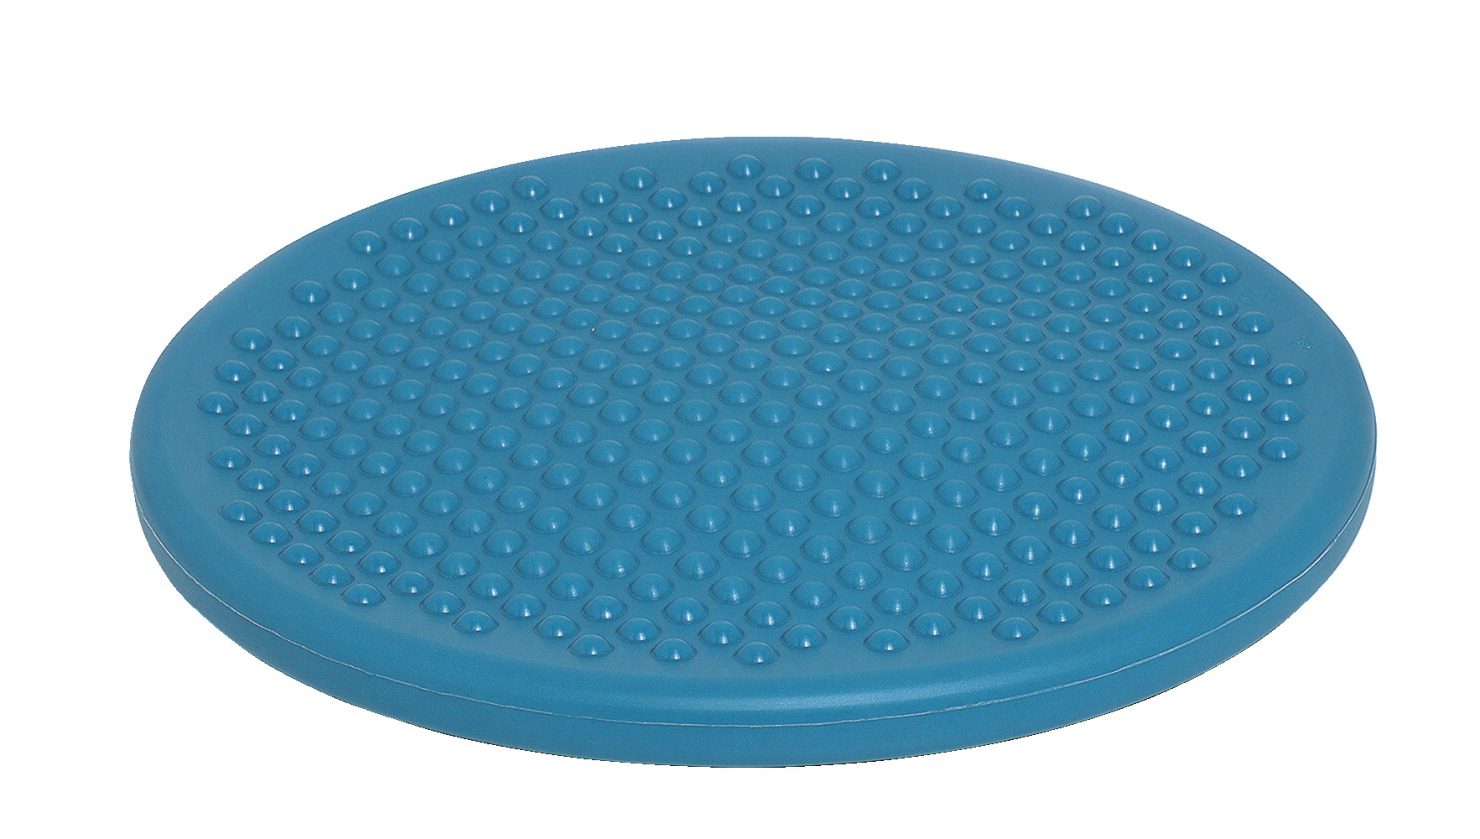 Gymnic Disc O Sit Inflatable Seat Cushion 15 Inches Blue